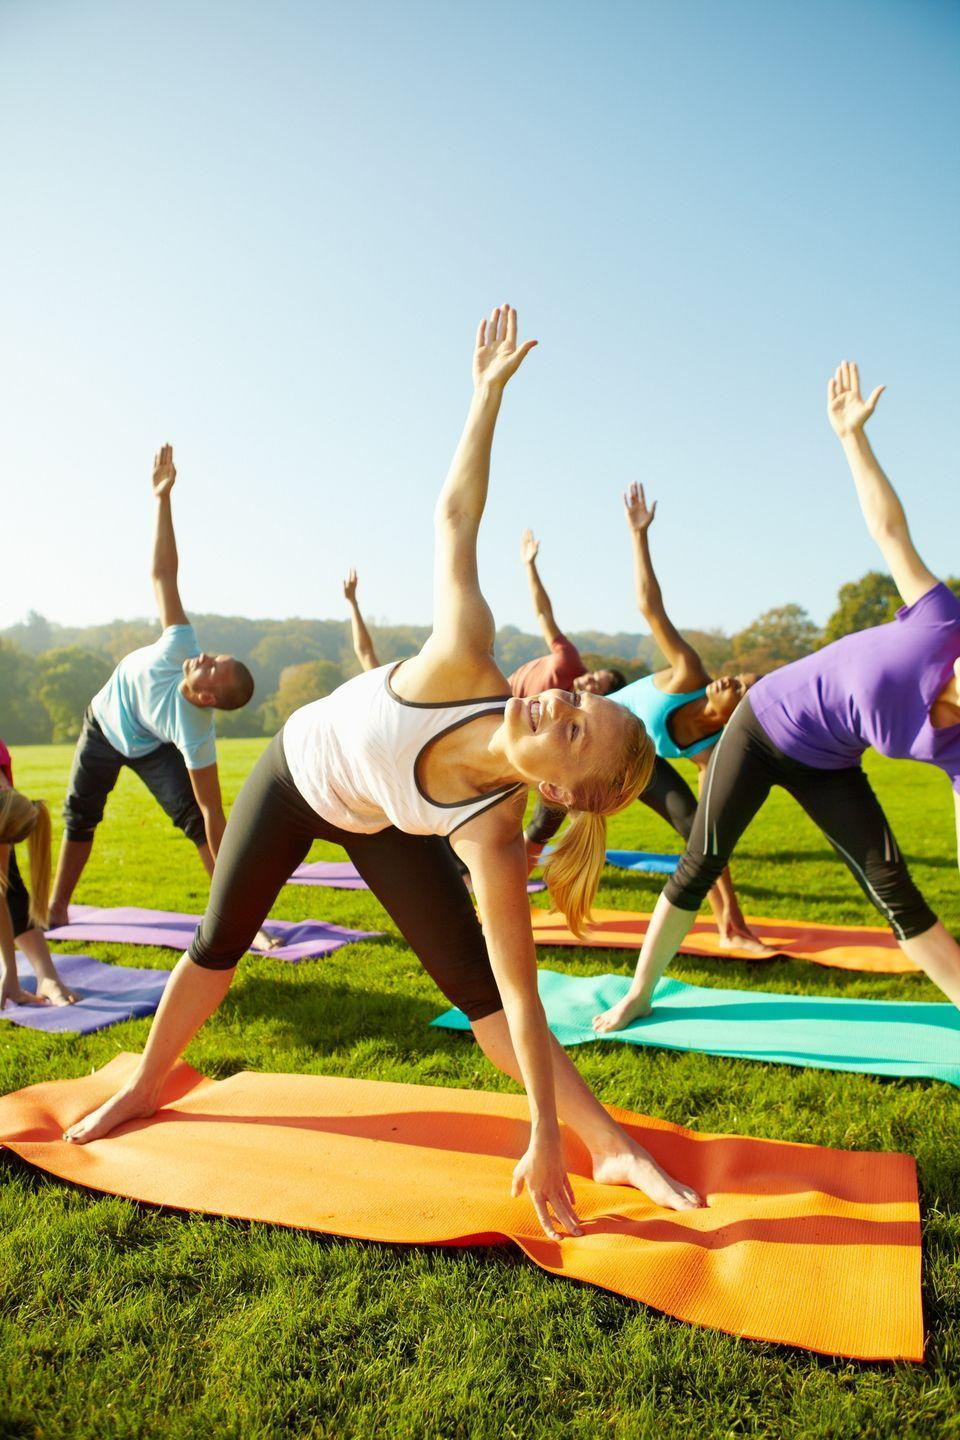 "<p>If you prefer to celebrate with peace over parties, a yoga class with friends is a great choice. An outdoor class on a sunny day is the perfect way to get centered before segueing into a birthday brunch.</p><p><a class=""link rapid-noclick-resp"" href=""https://go.redirectingat.com?id=74968X1596630&url=https%3A%2F%2Fwww.walmart.com%2Fip%2FEveryday-Essentials-All-Purpose-1-2-Inch-High-Density-Foam-Exercise-Yoga-Mat-Anti-Tear-with-Carrying-Strap-Blue%2F275846958&sref=https%3A%2F%2Fwww.thepioneerwoman.com%2Fhome-lifestyle%2Fentertaining%2Fg34192298%2F50th-birthday-party-ideas%2F"" rel=""nofollow noopener"" target=""_blank"" data-ylk=""slk:SHOP YOGA MATS"">SHOP YOGA MATS</a></p>"